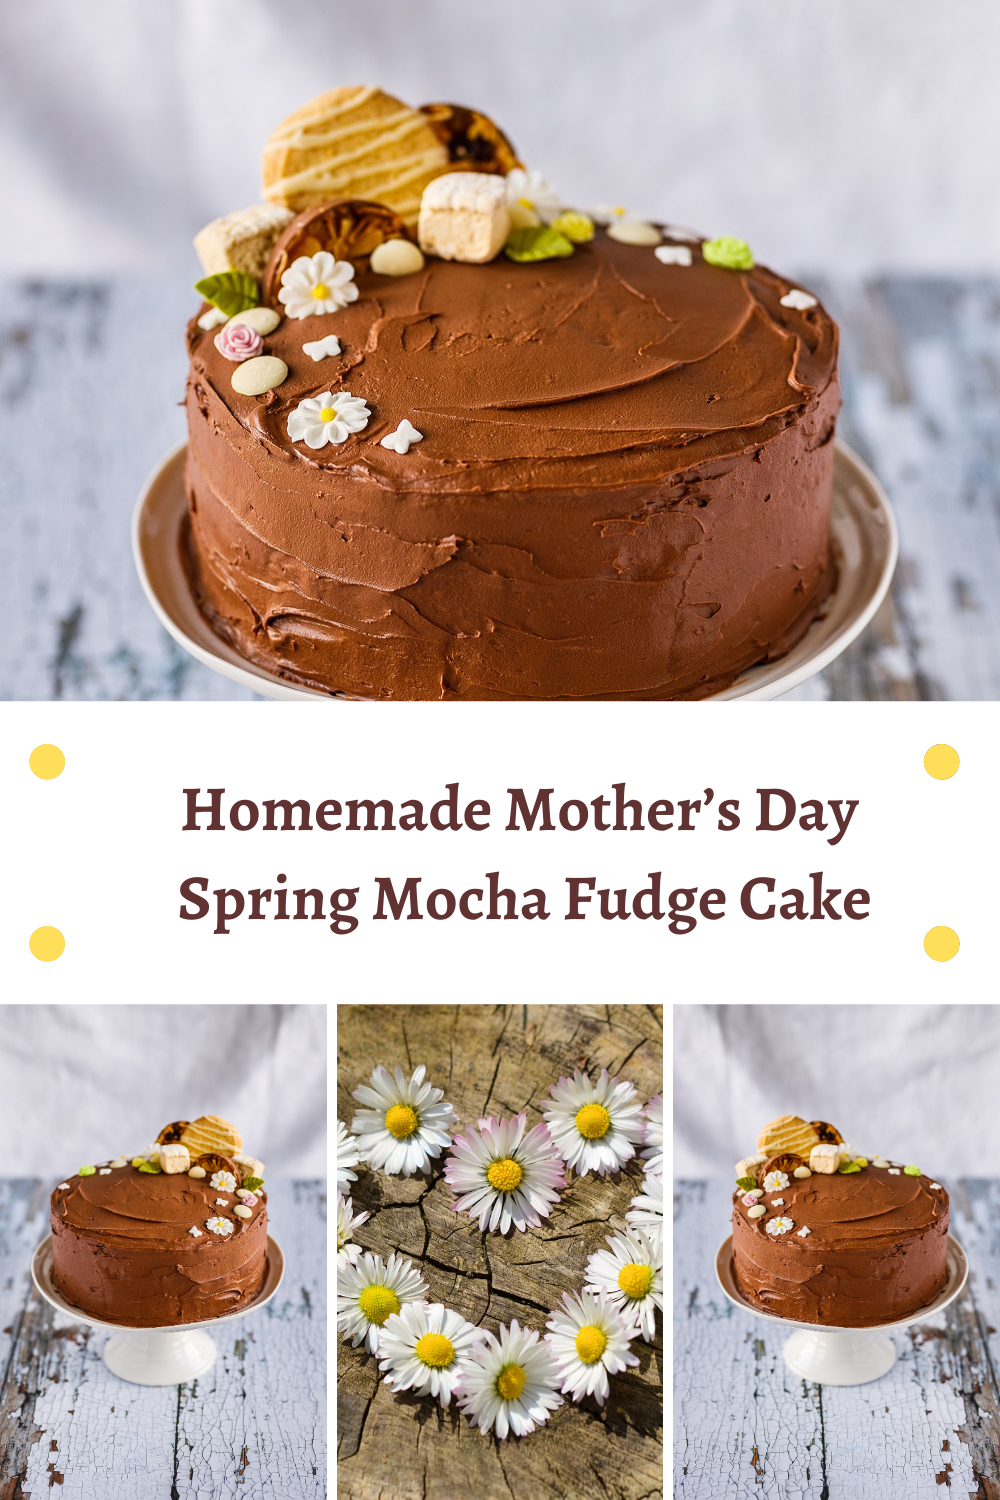 Homemade Mother's Day Spring Mocha Fudge Cake